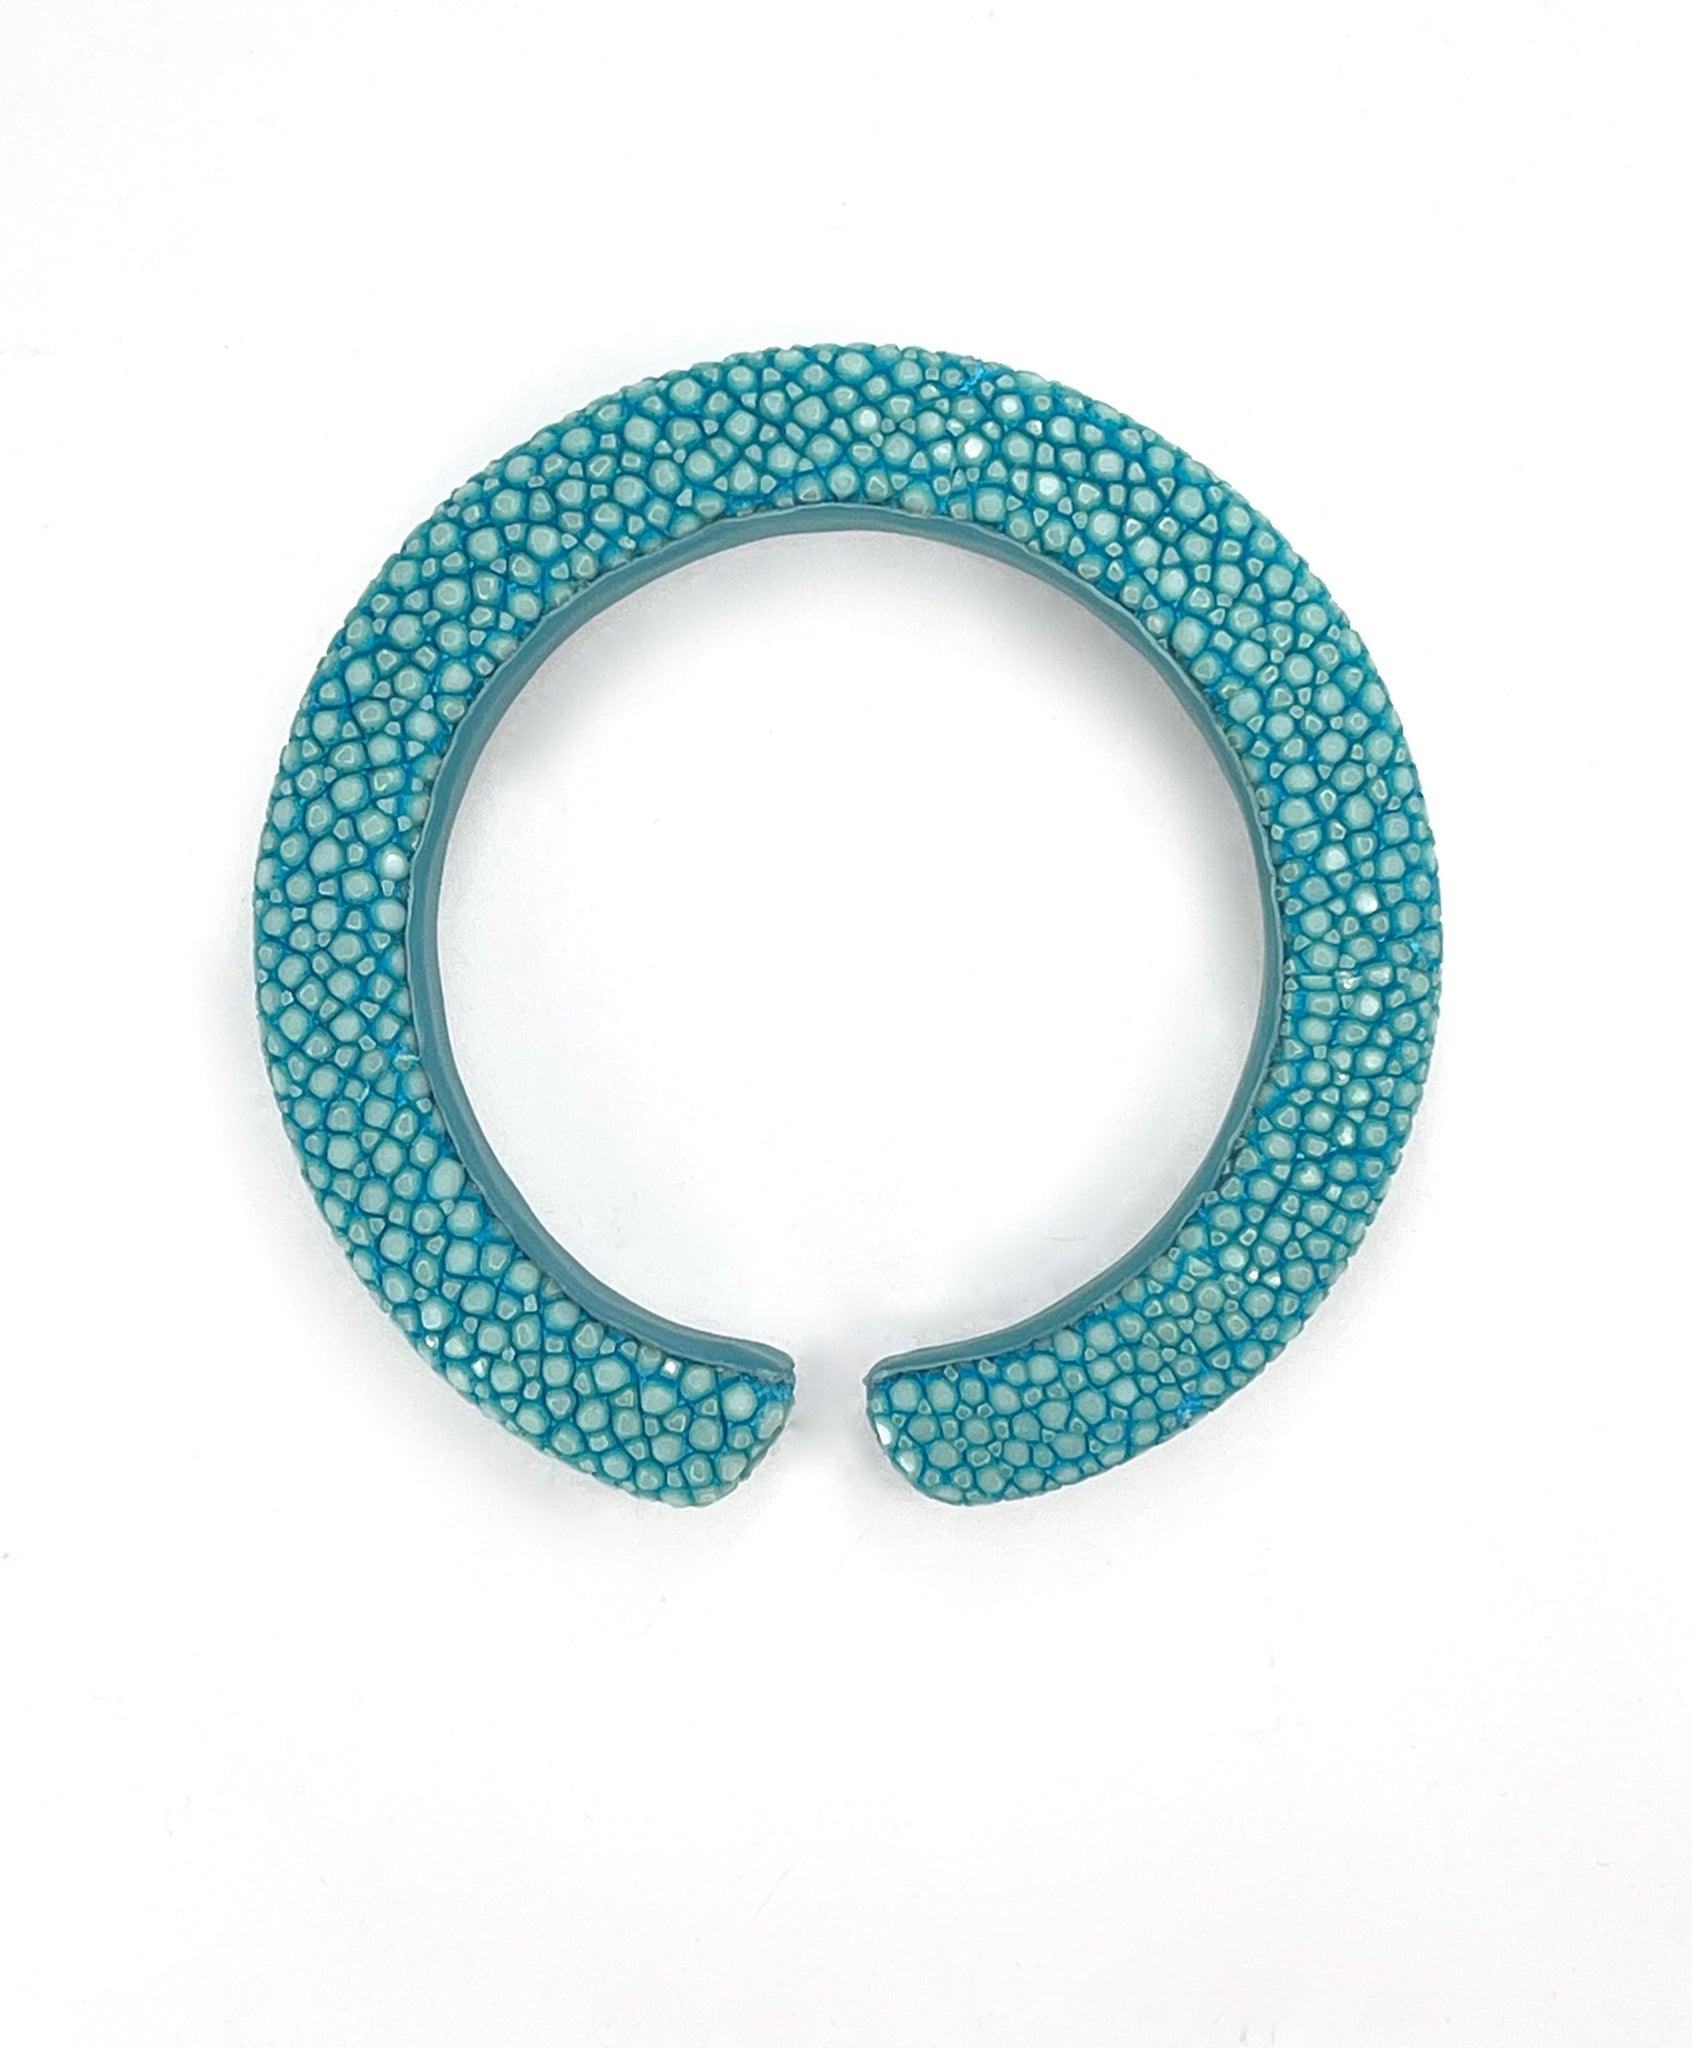 Narrow Shagreen Cuff in Turquoise